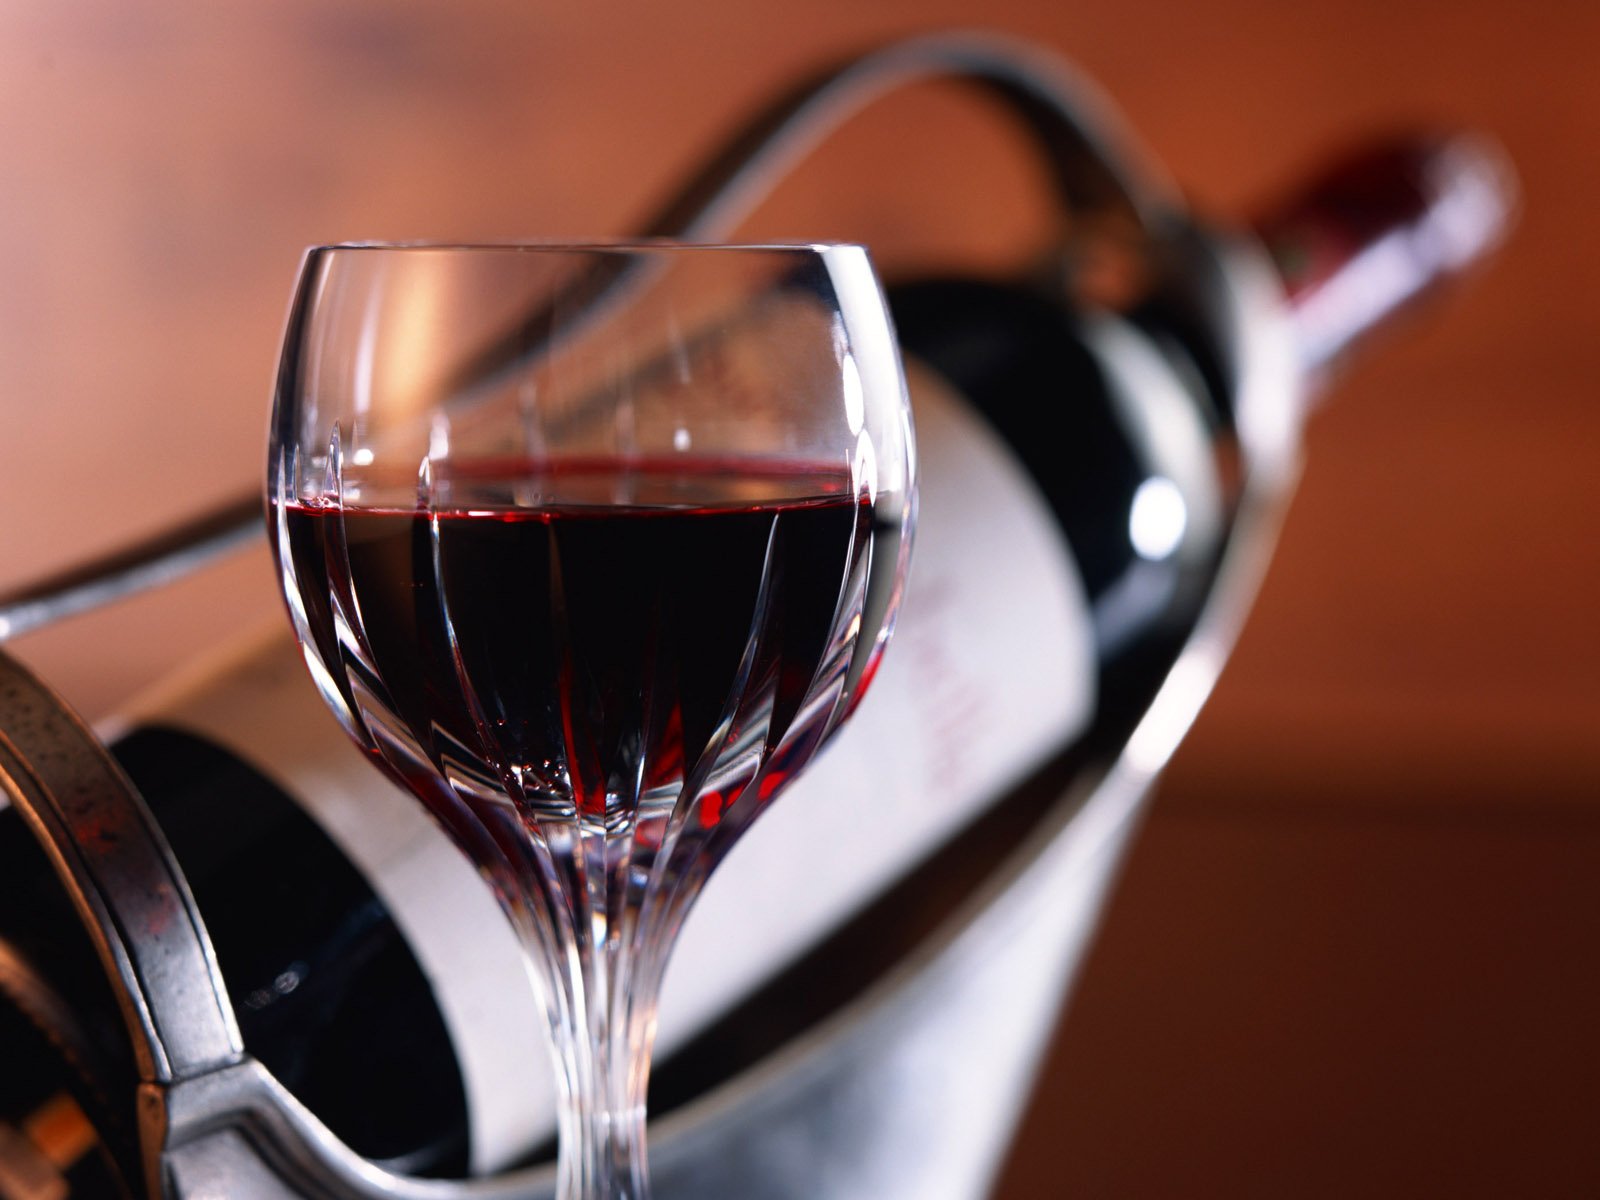 Food_Drinks_A_glass_of_red_wine_011942_